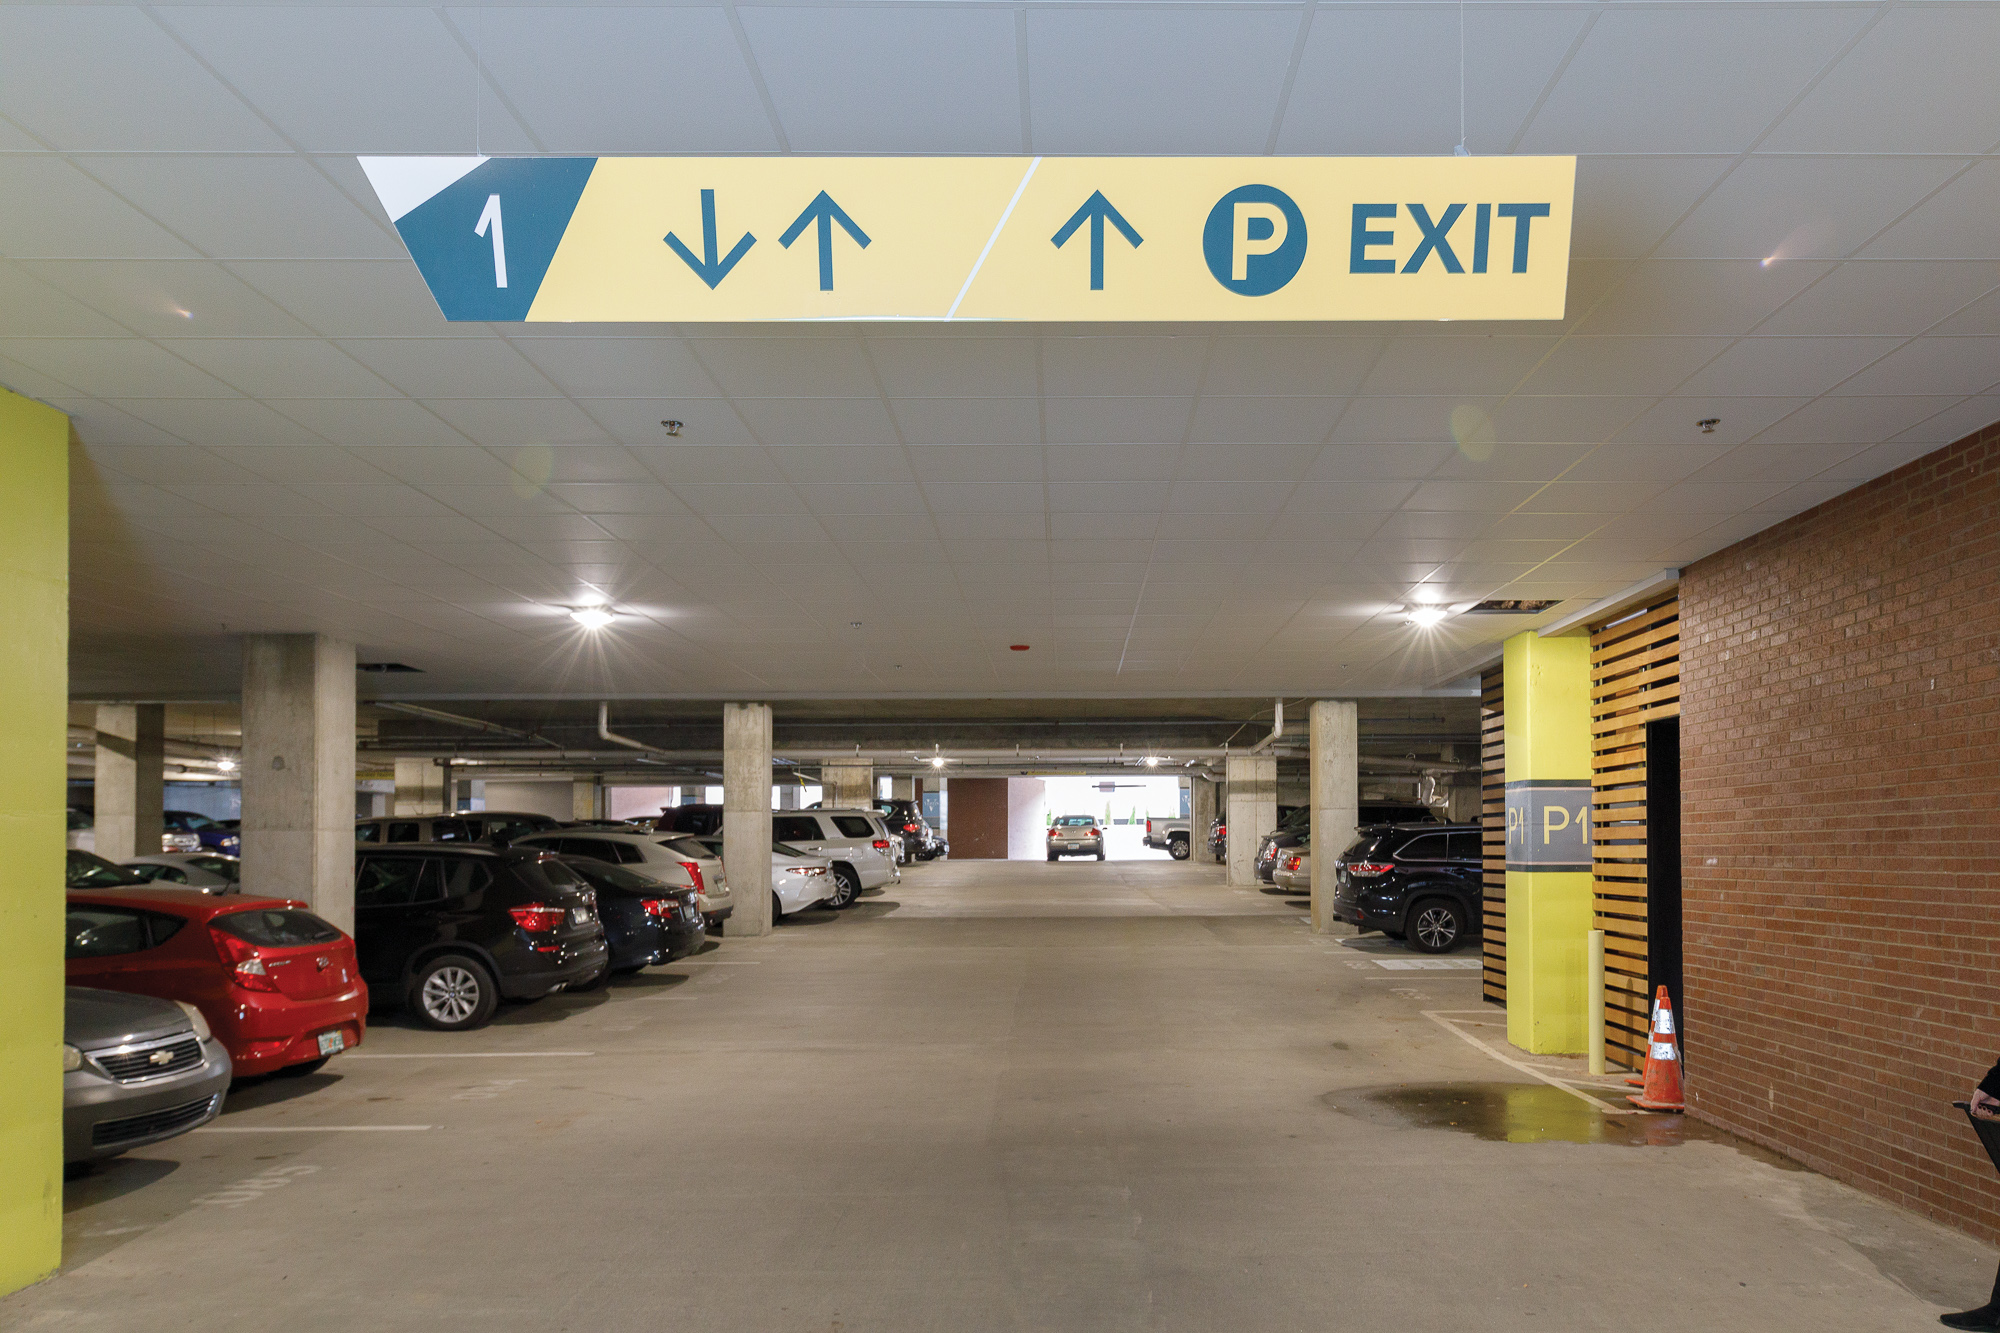 Vertis-Green-Hills_wayfinding-signage_parking garage overhead directional_MG_6322_small 2000 px.jpg